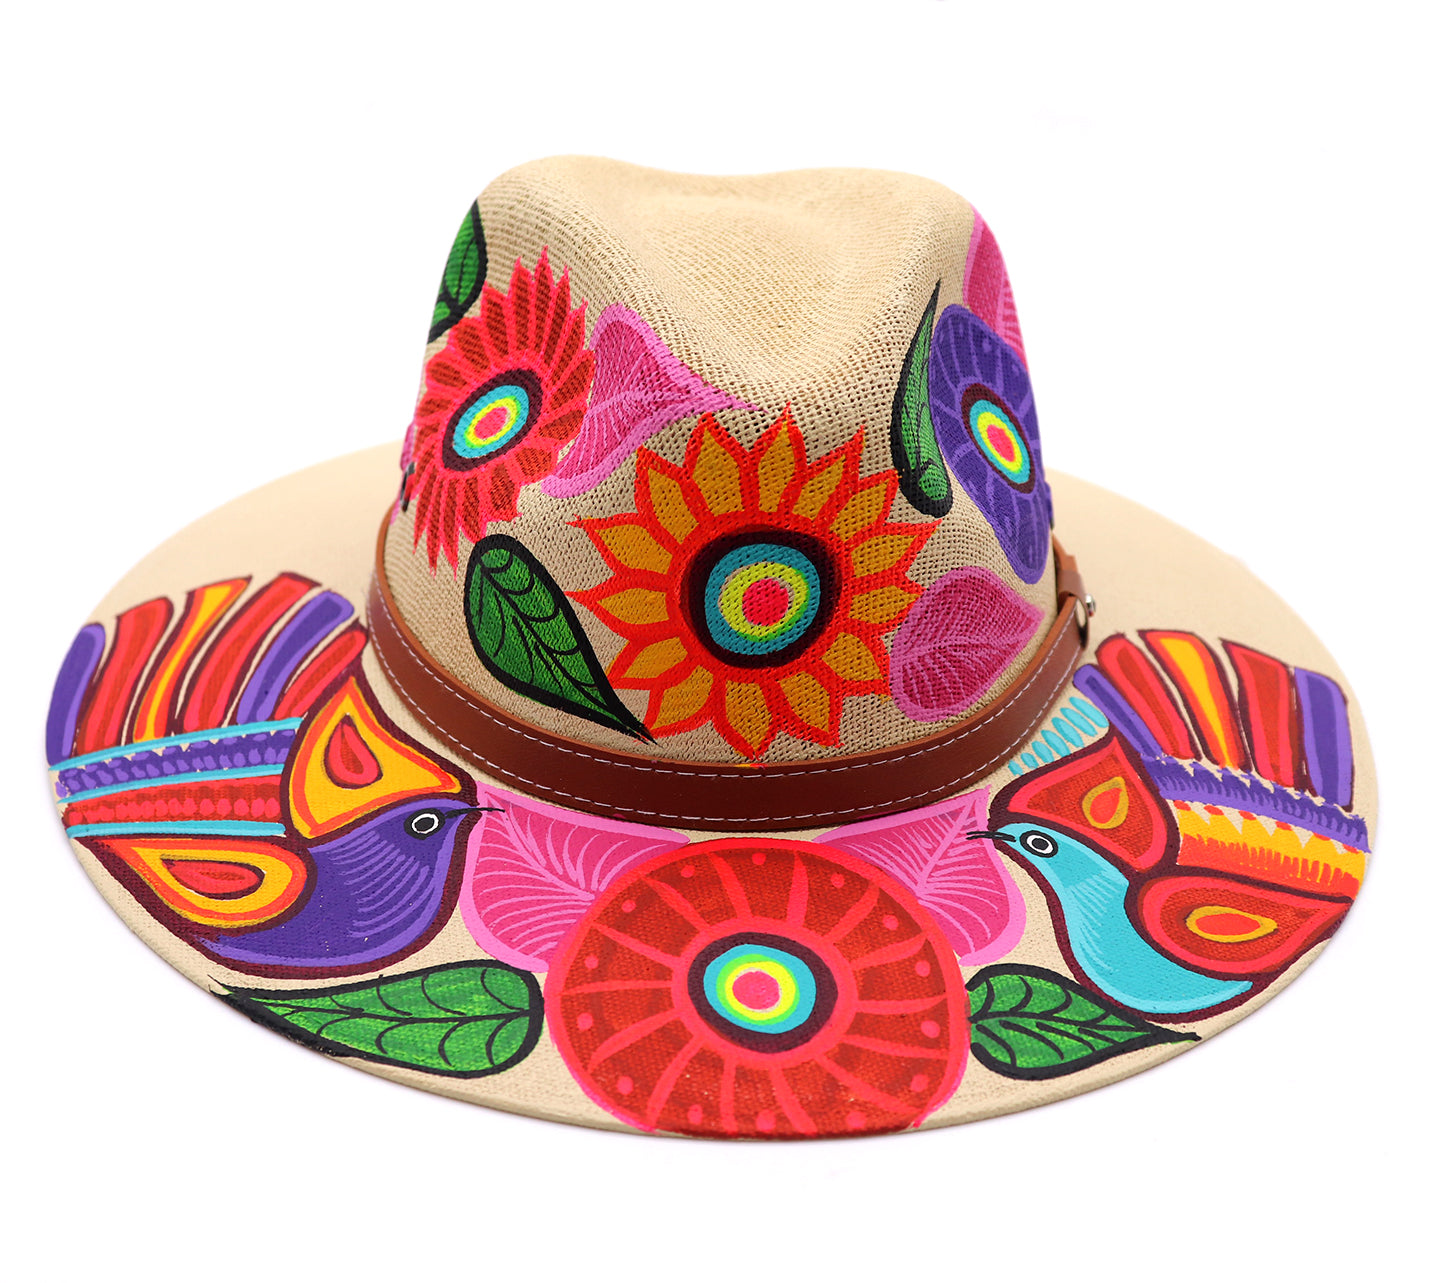 Adult hat uniquely hand painted by local mexican artist. Sombrero hat are comfortable and offer nice shade for summer heat protection and keeping cool. Great cultural piece or gift for a loved one. Each design is unique. Natural color Hat with brown strap and sunflowers and birds design.